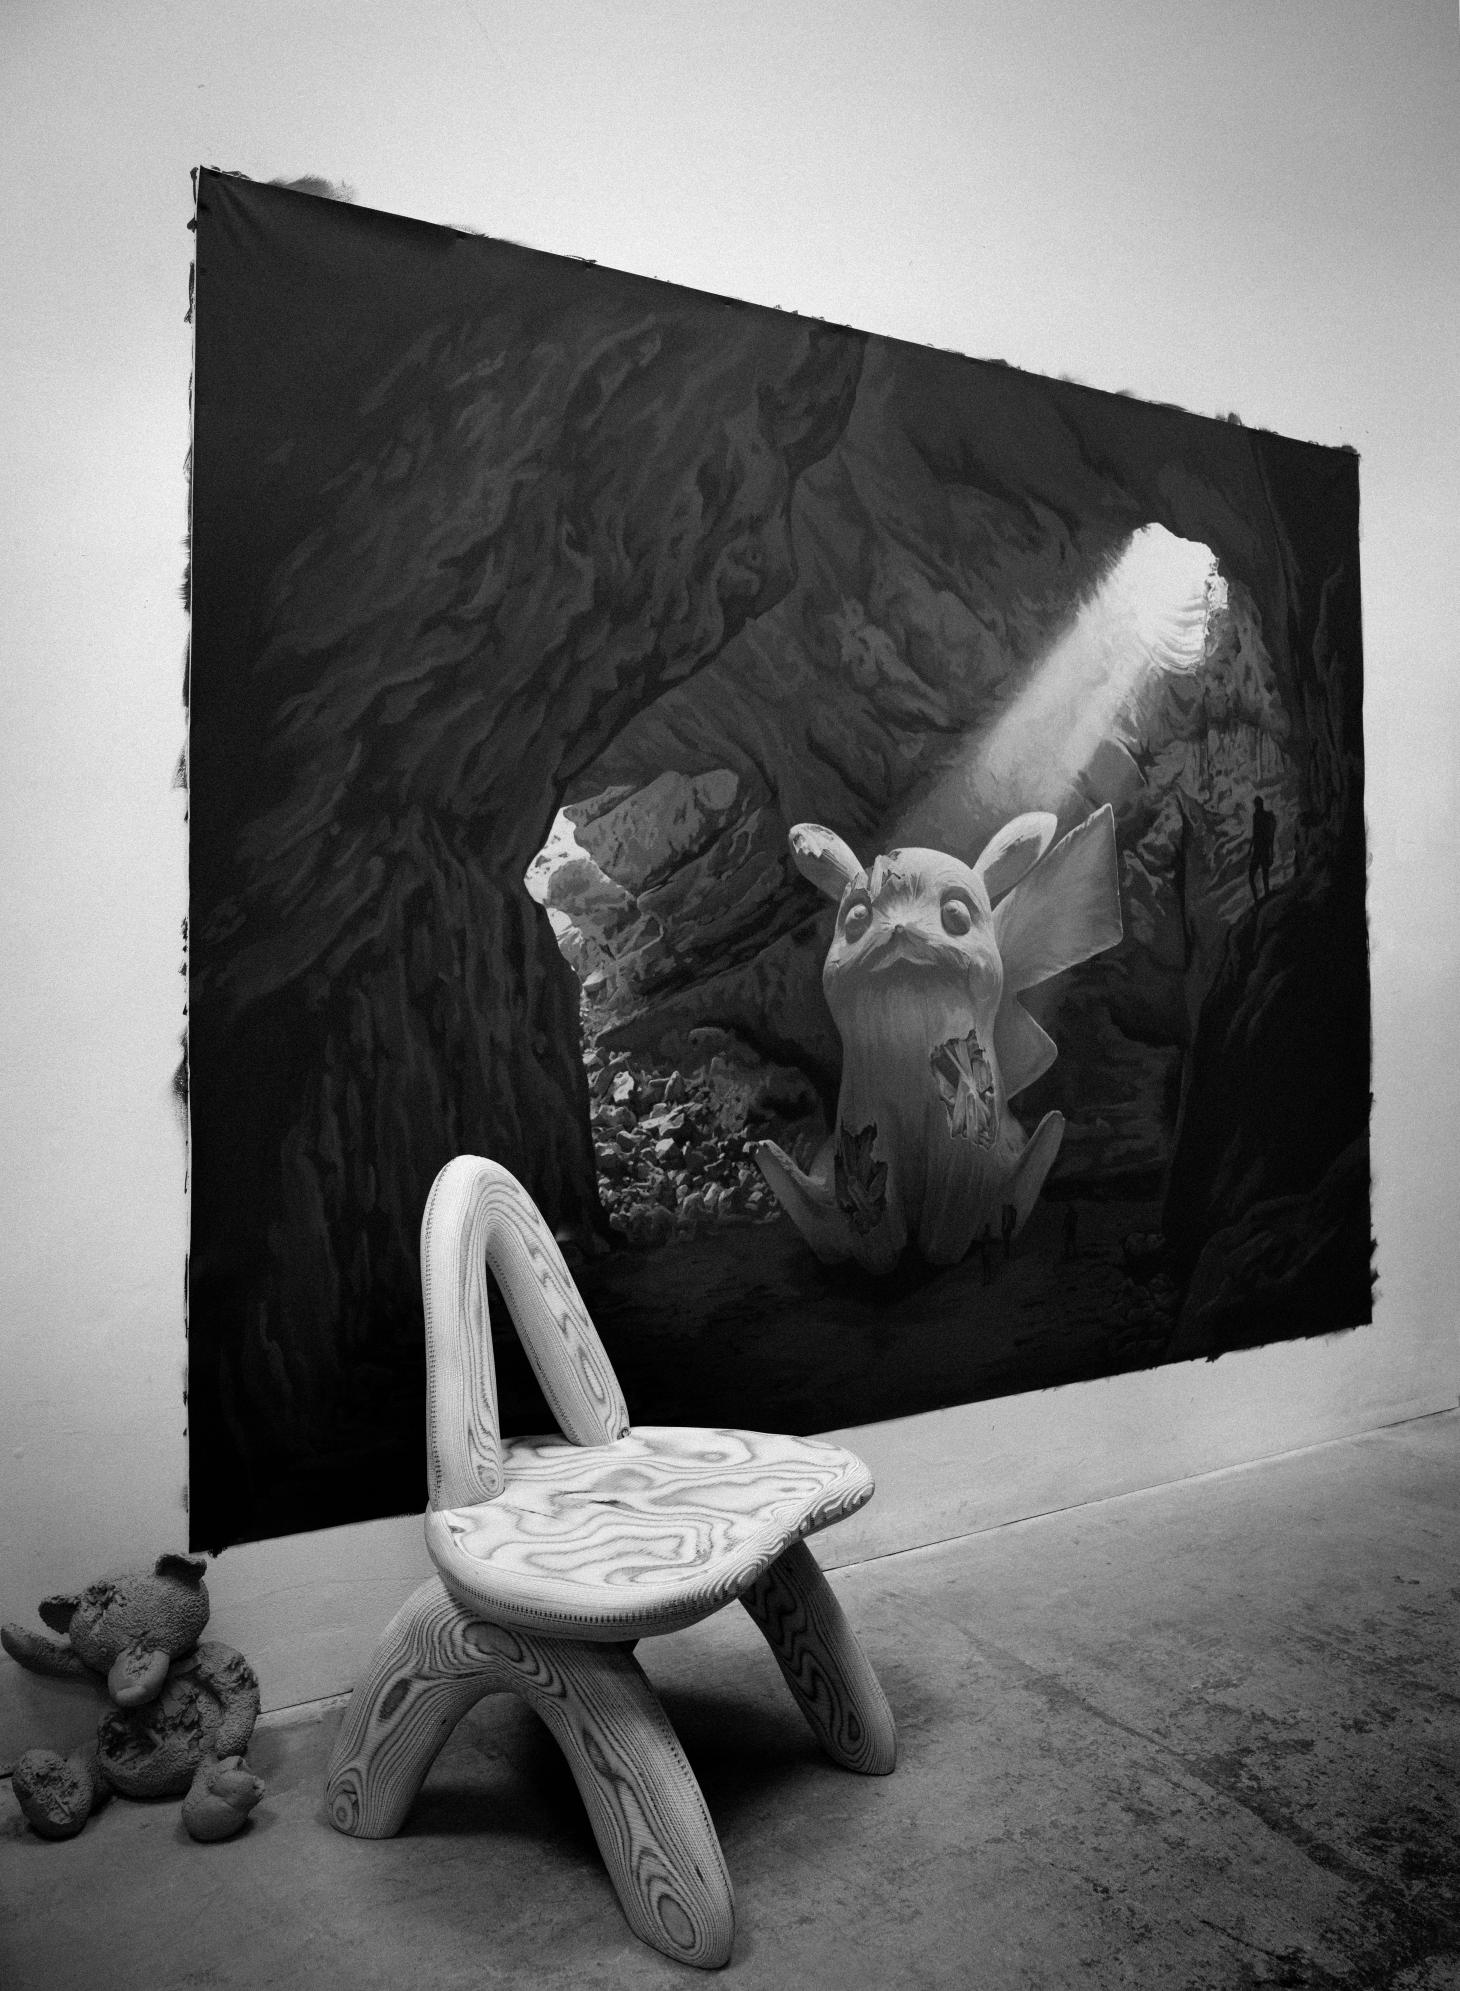 Black and white photograph of Daniel Arsham furniture and artwork, including a stone chair from Objects for Living II